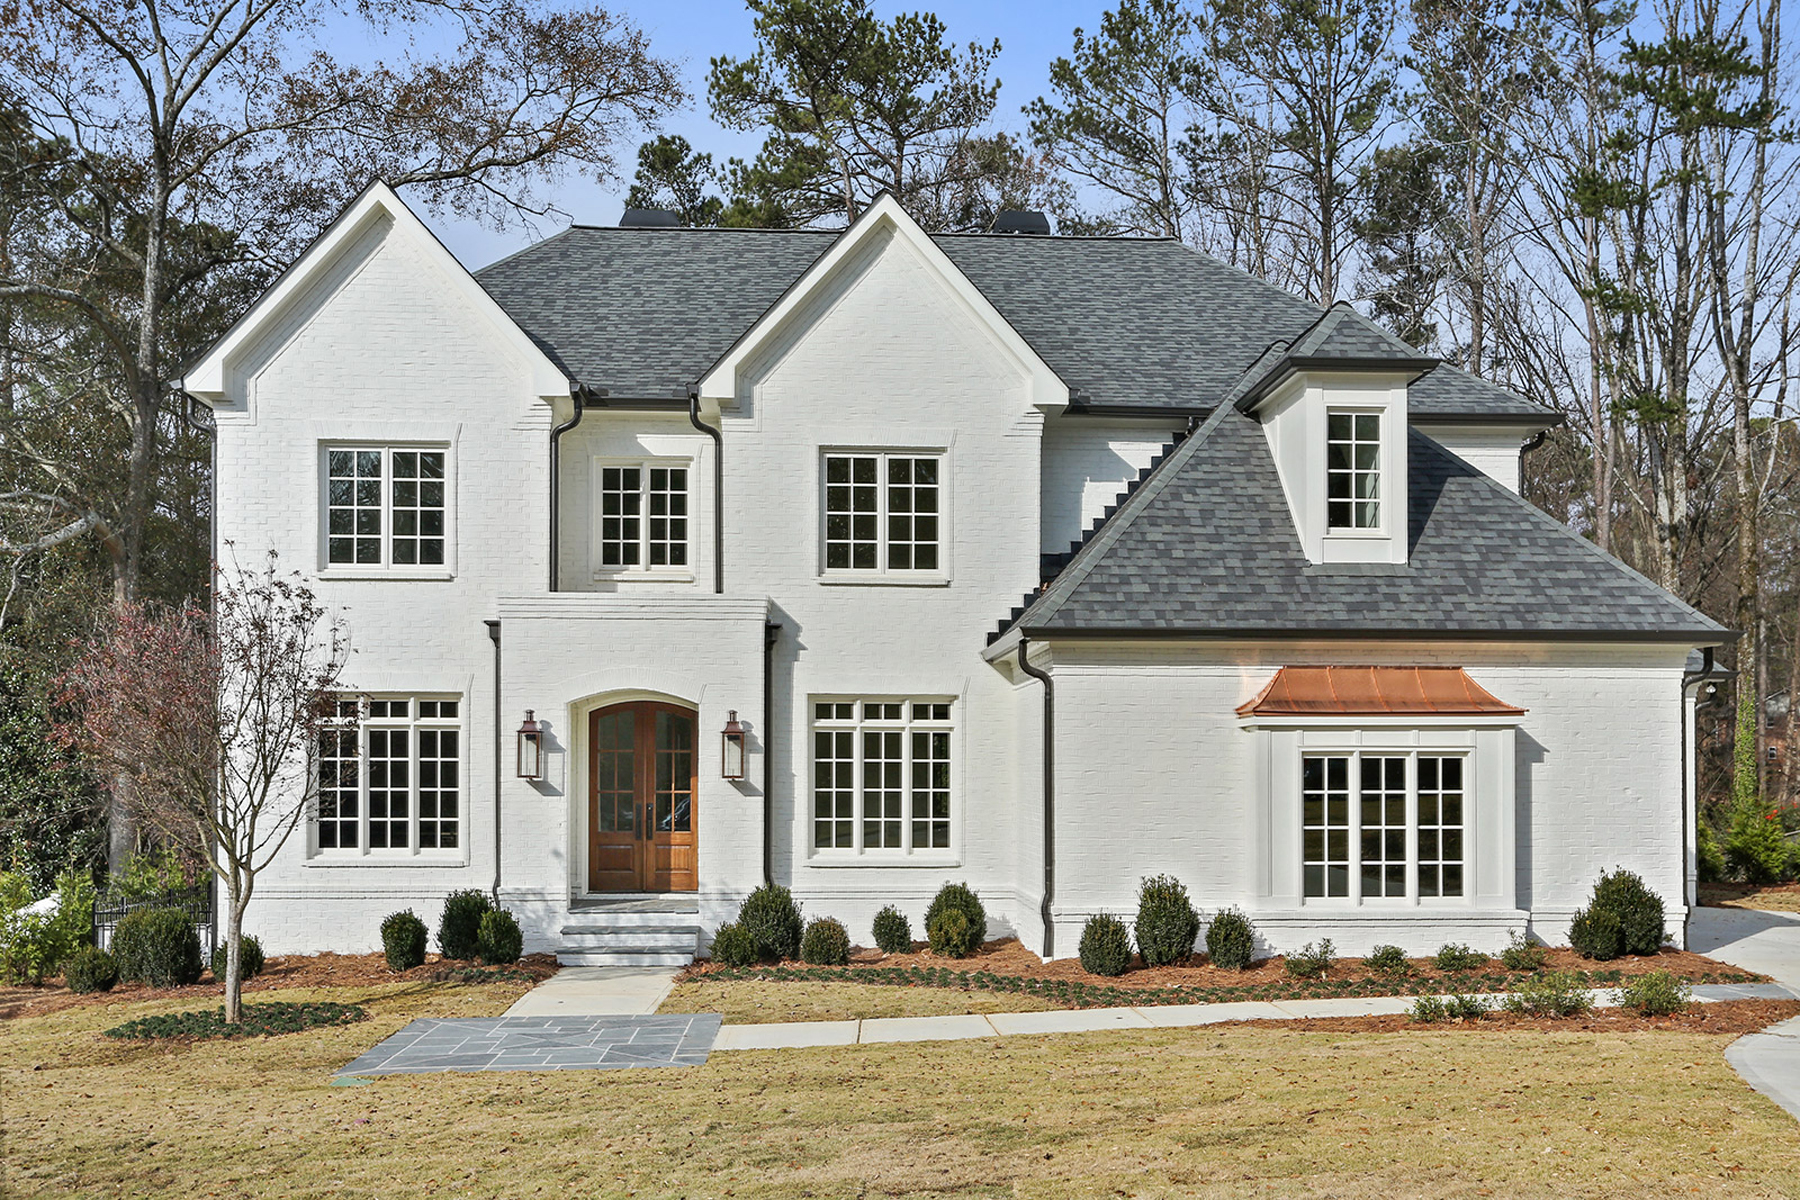 Single Family Homes for Active at European-Inspired Traditional New Construction 555 Carriage Drive Sandy Springs, Georgia 30328 United States